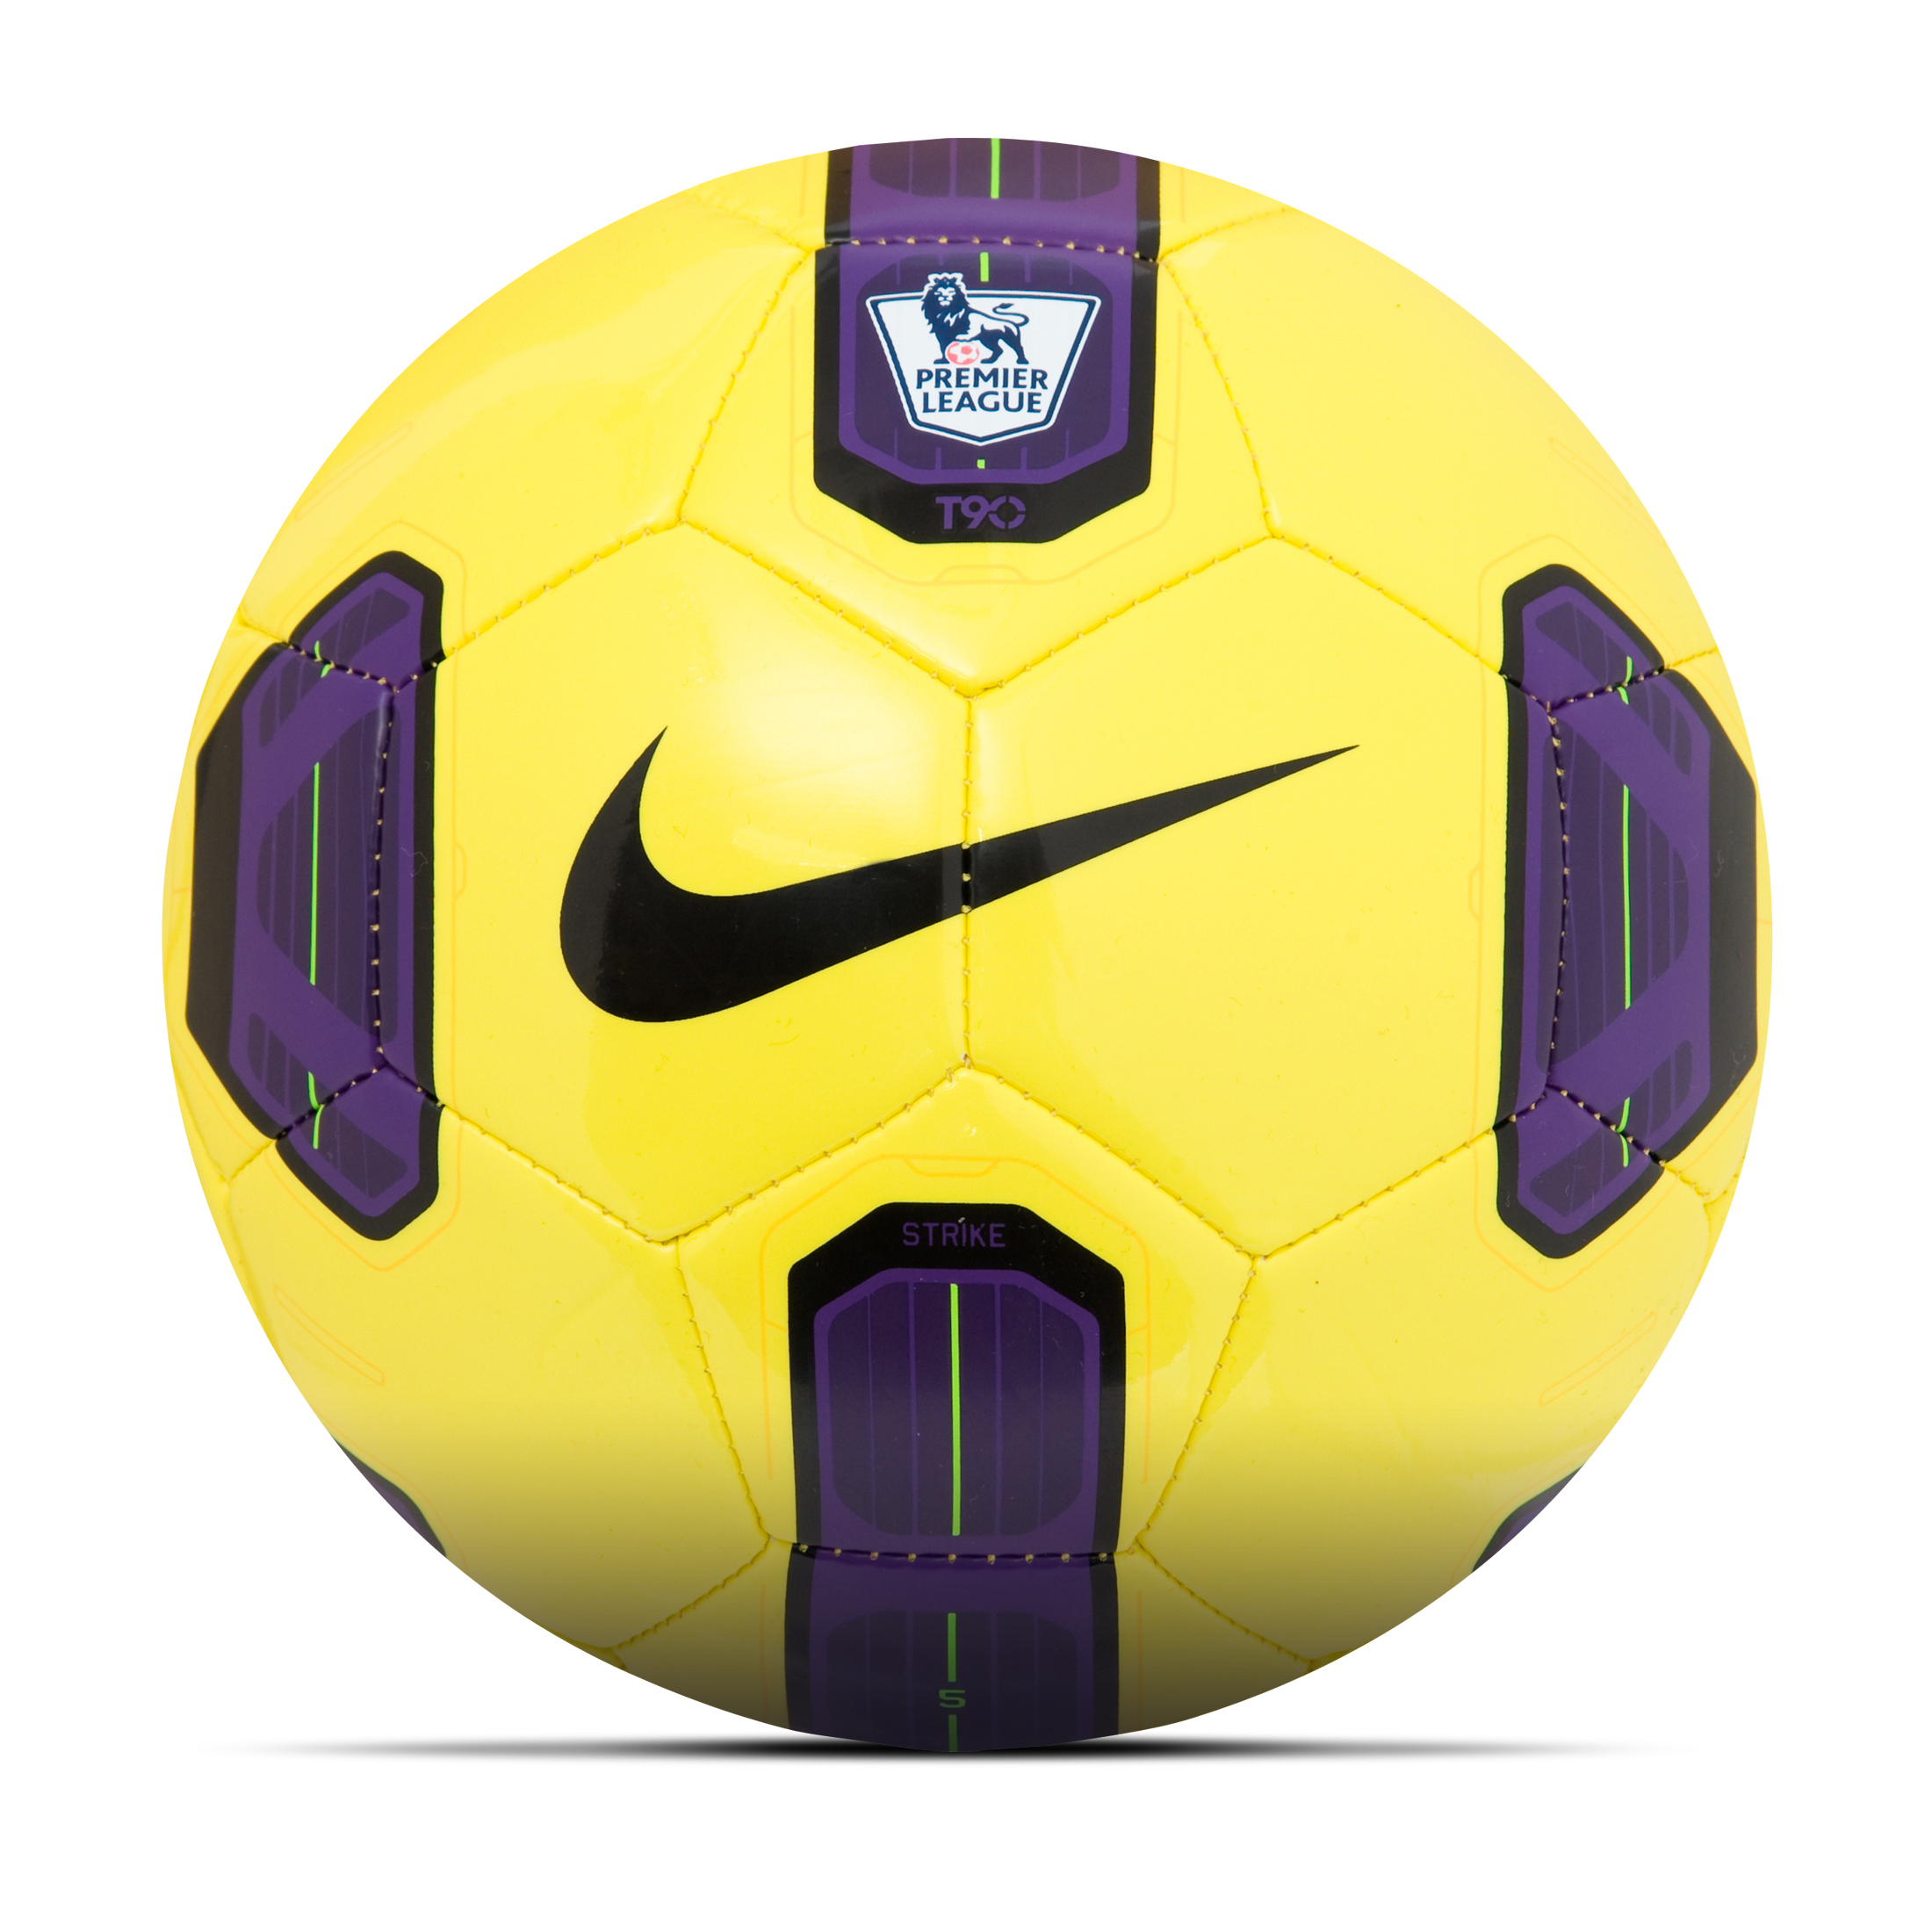 Nike Total90 Strike Hi-Vis Premier League Football - Size 5